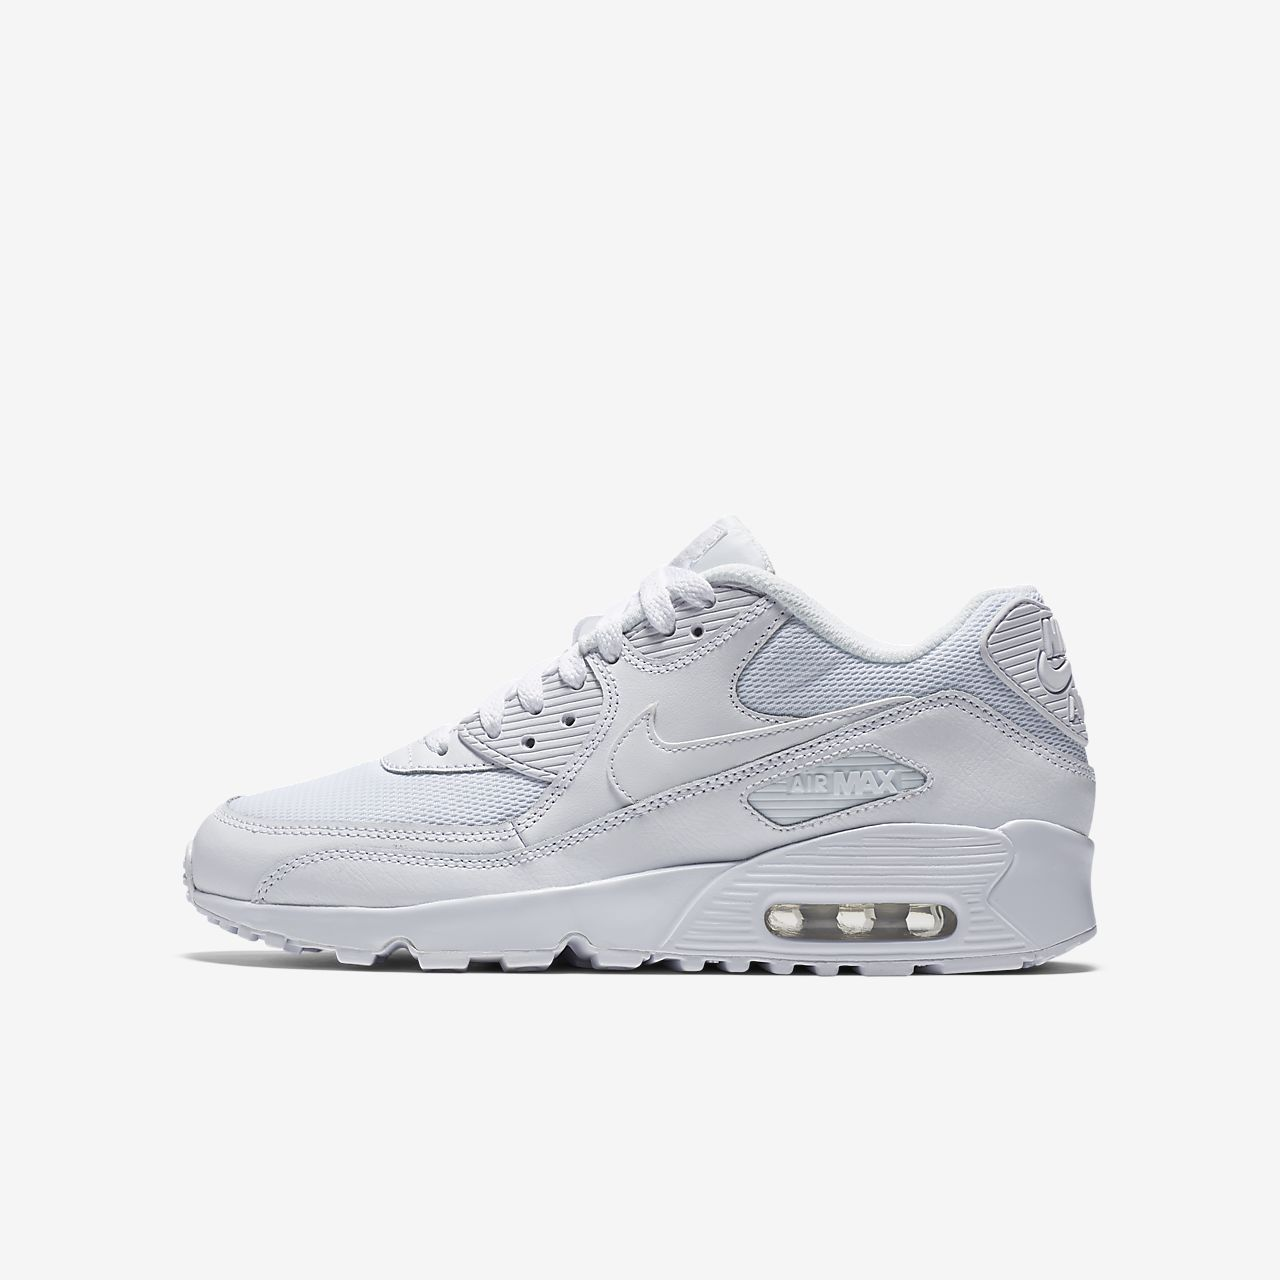 on sale 697e4 278c8 Nike Air Max 90 Mesh